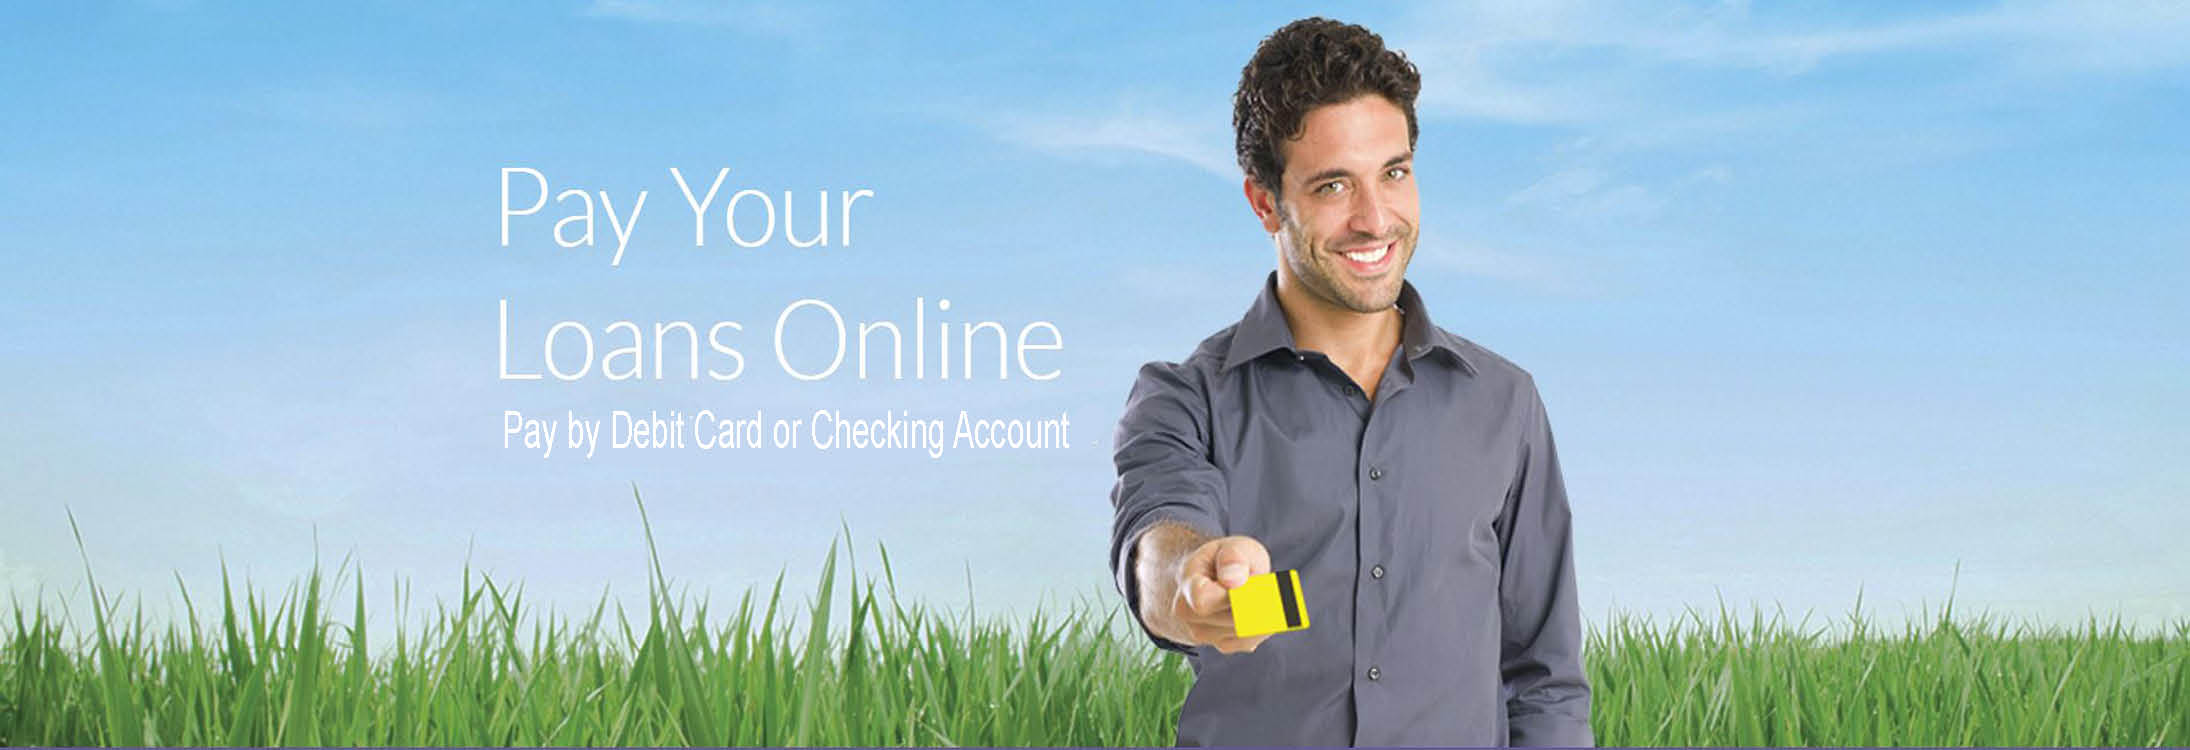 Pay your loans onine by debit or credit card